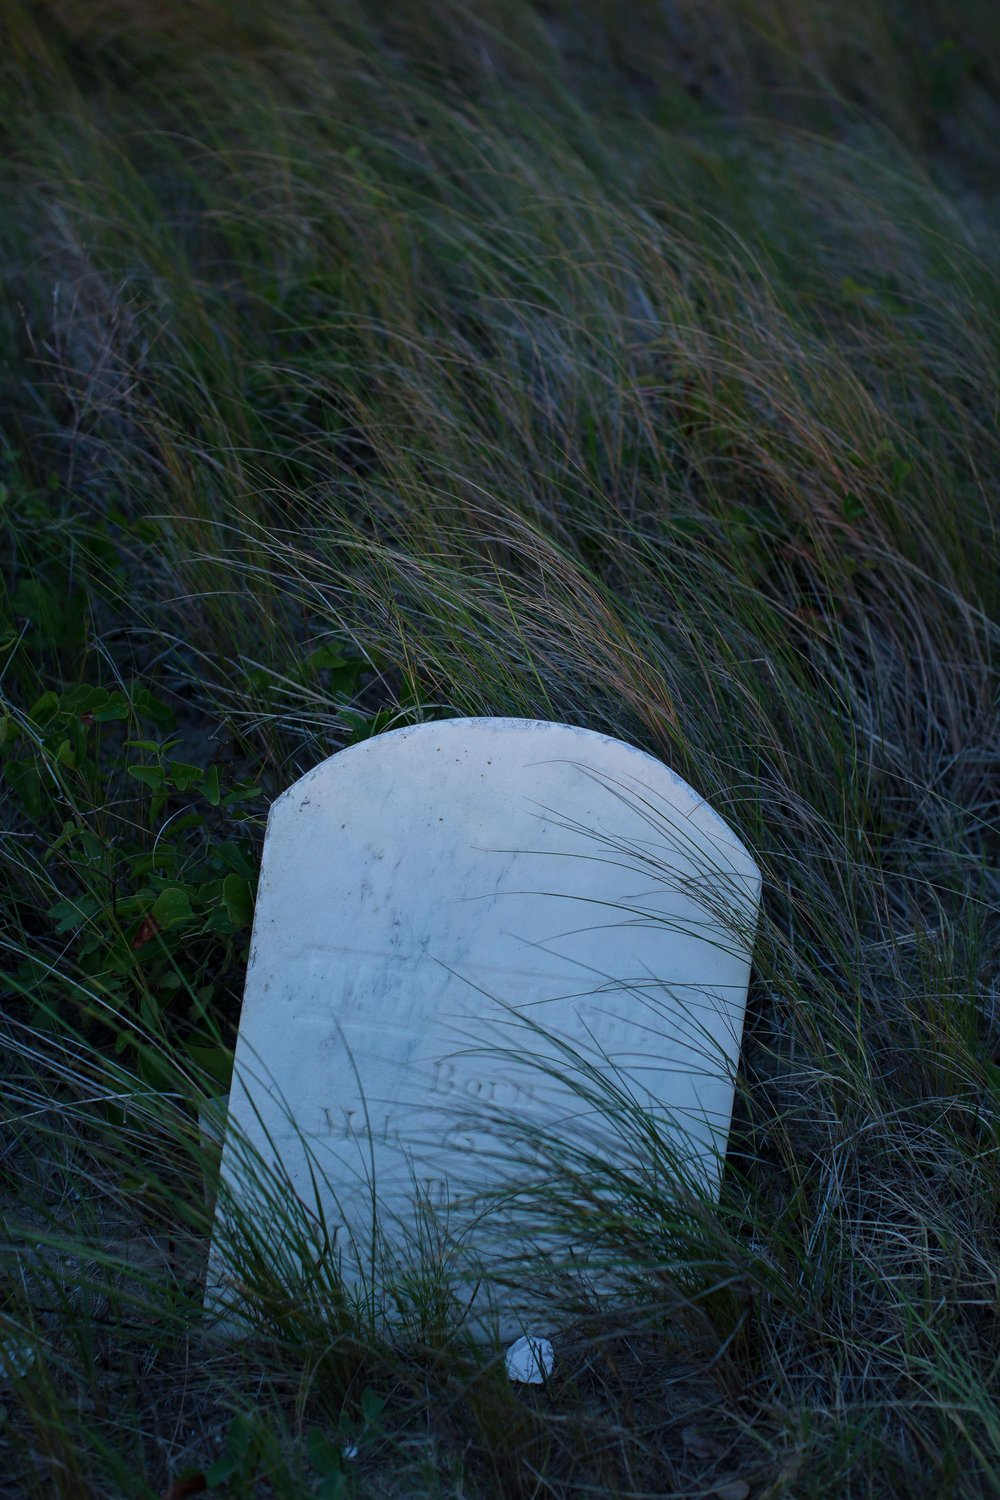 The grave of Mary L.A. Gray, March 5, 1836 - March 7, 1902.